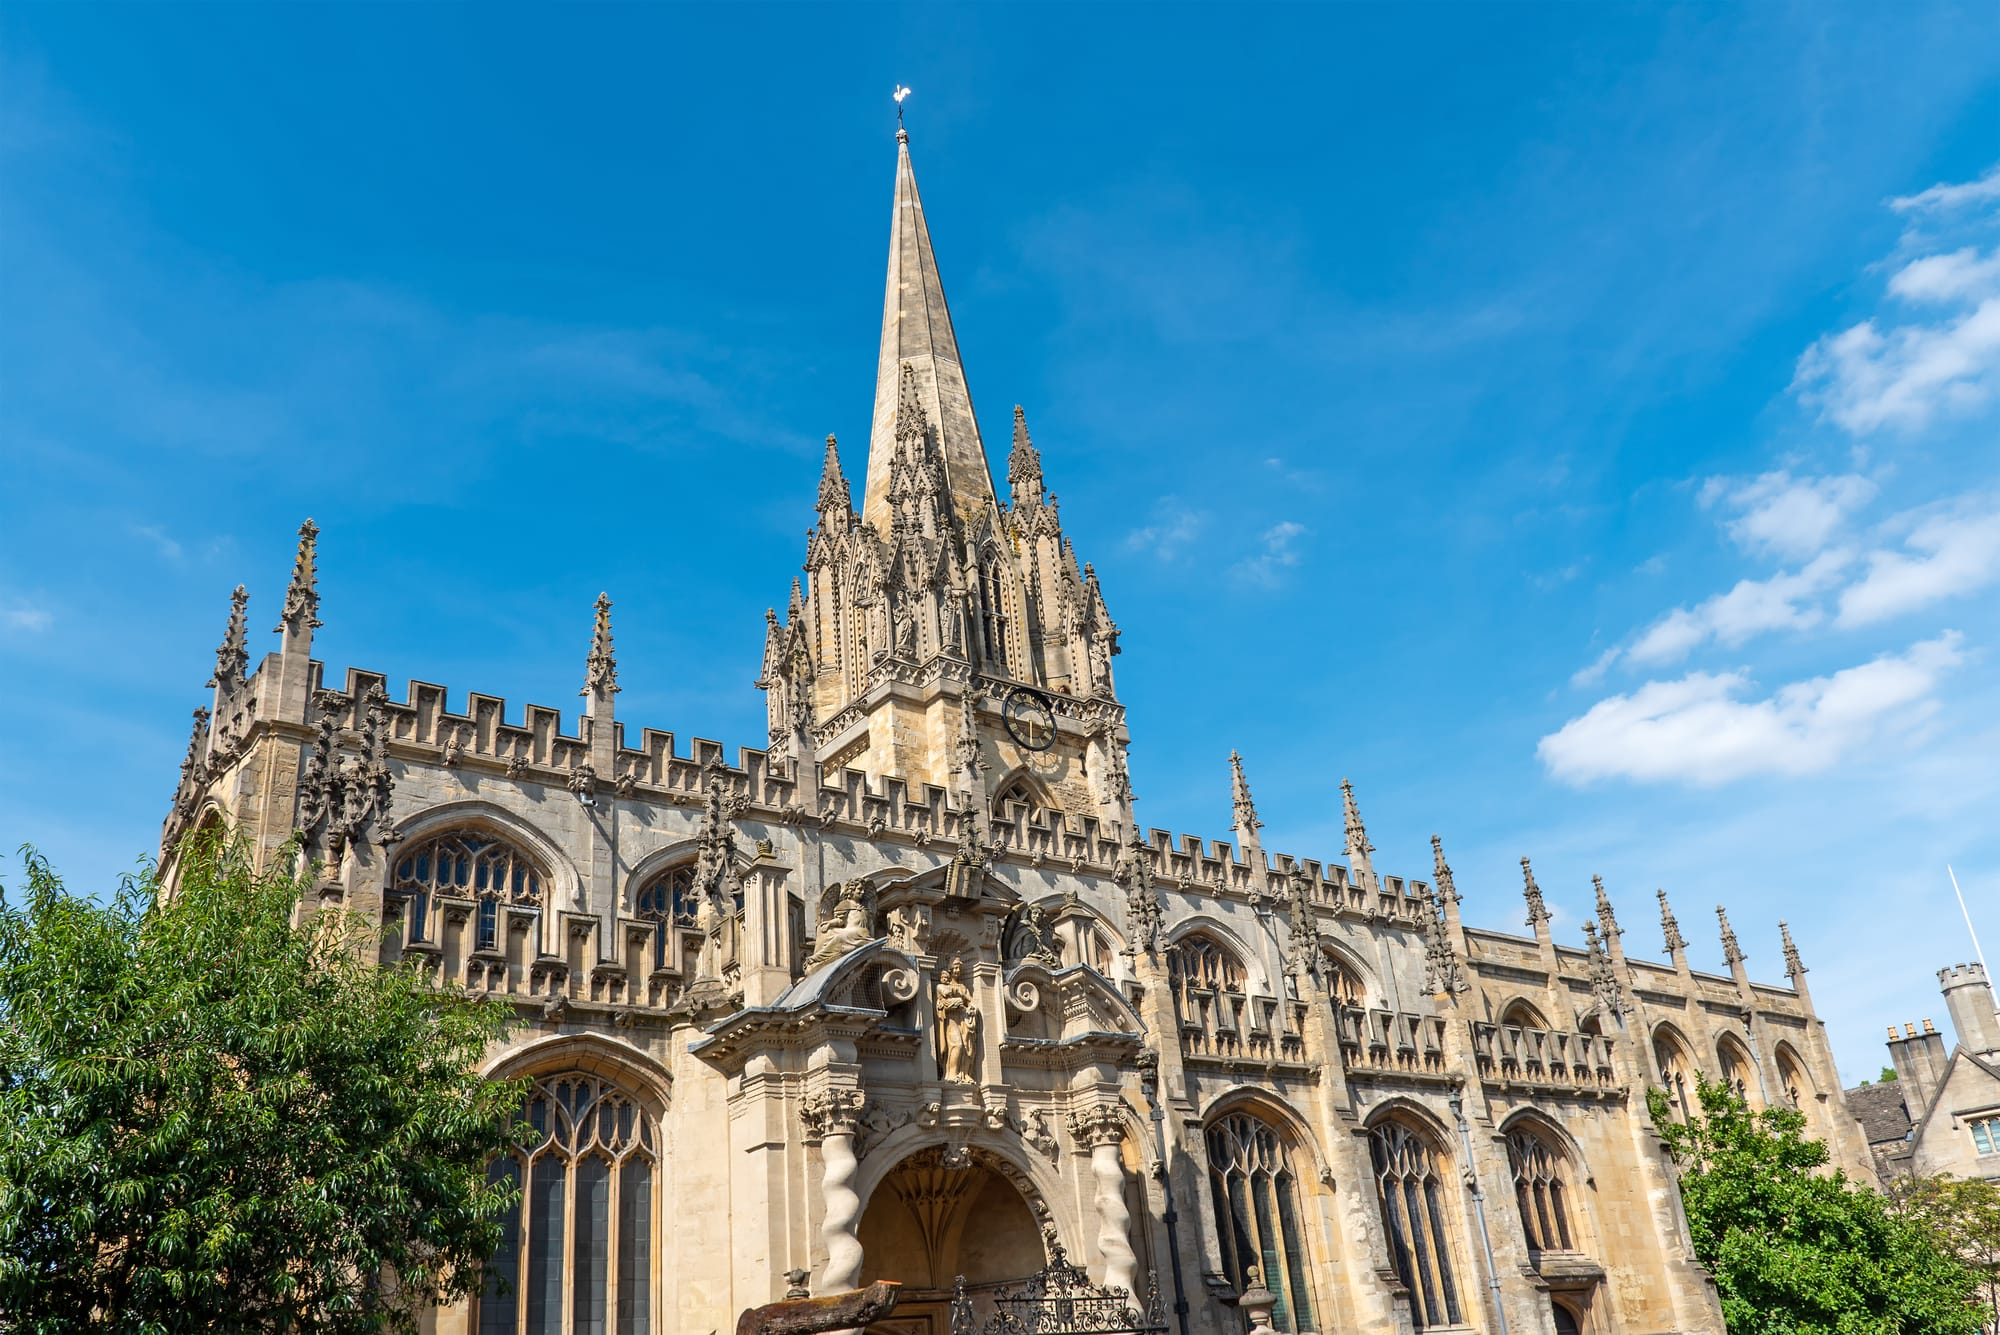 Daytrip to Oxford-things to do in the City of dreaming spires